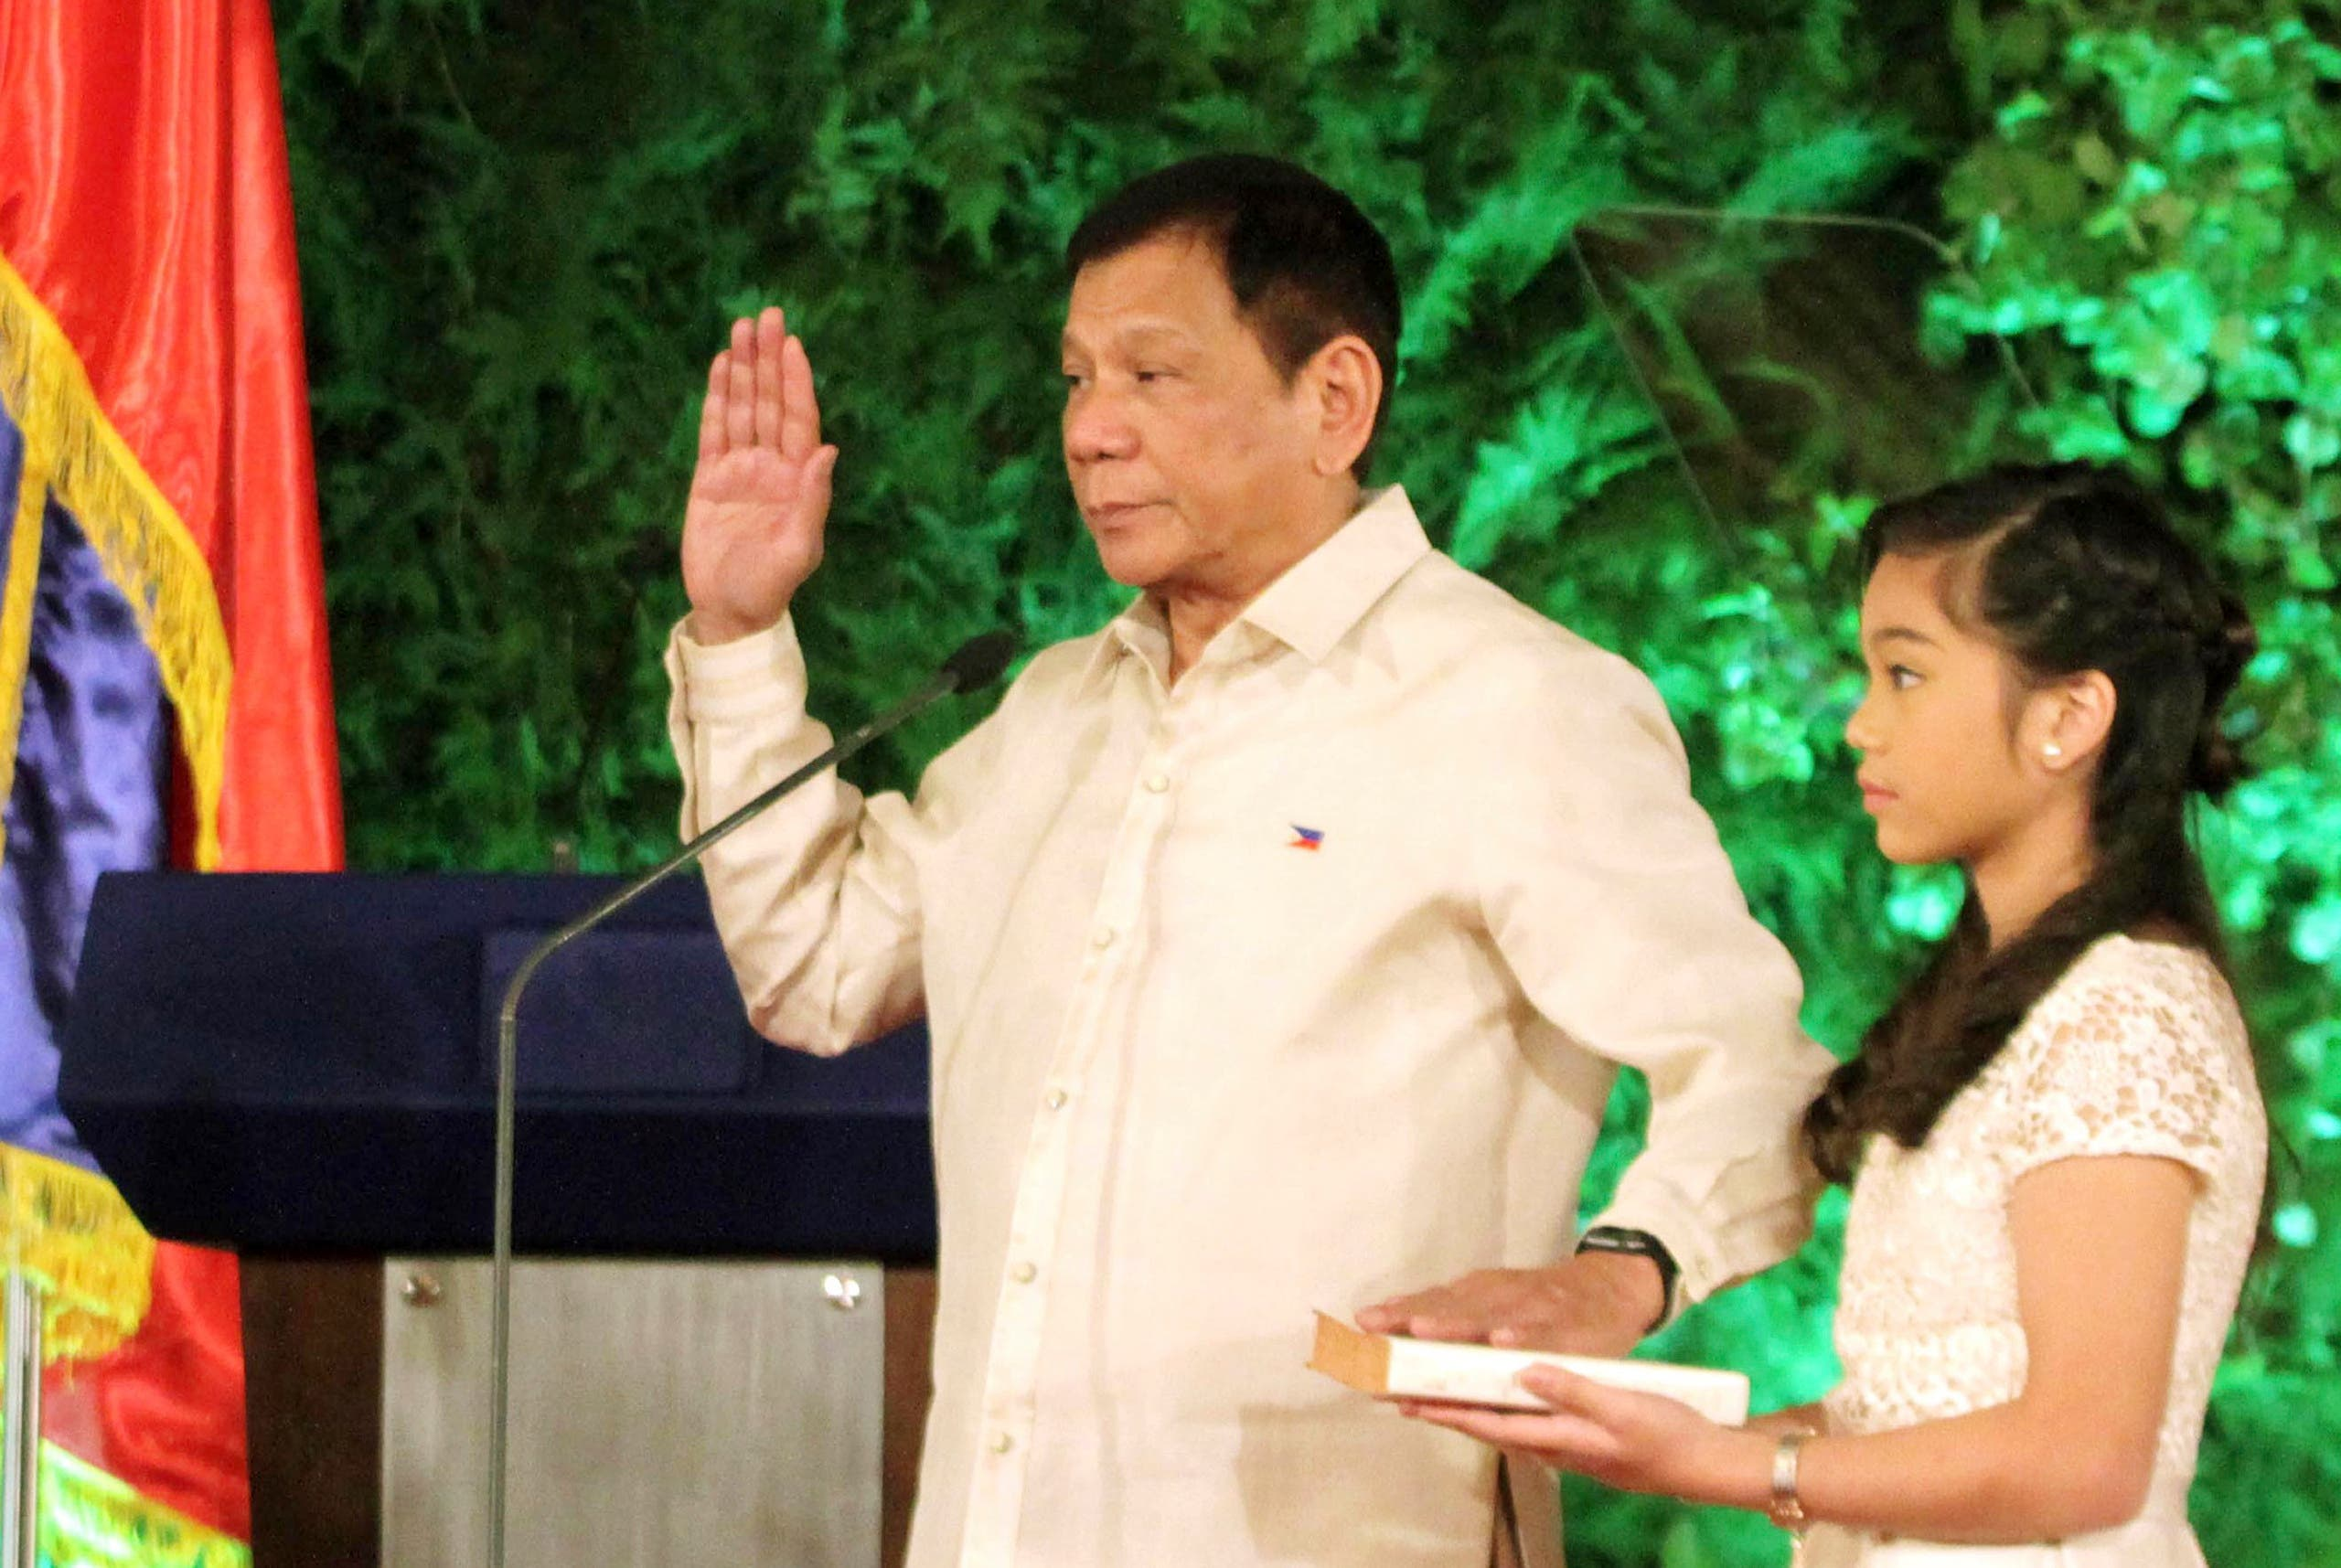 The new Philippine President, Rodrigo Duterte, takes the oath as his daughter Veronica holds the Bible during the inauguration ceremony in Malacanang Palace Thursday, June 30, 2016 in Manila, Philippines (AP)